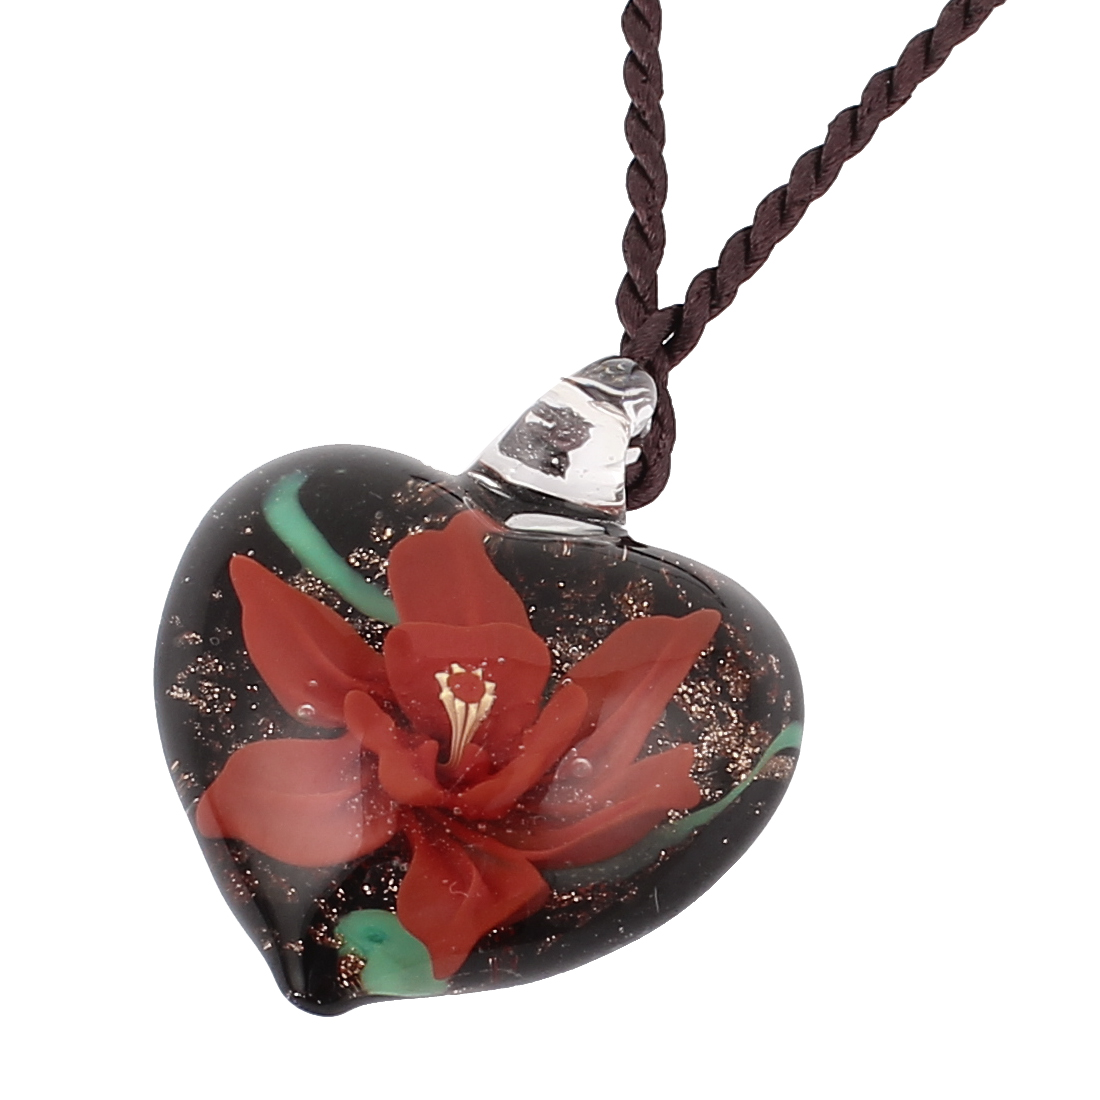 Heart Shape Glass Pressed Floral Pendant Necklace Neckwear Red Black